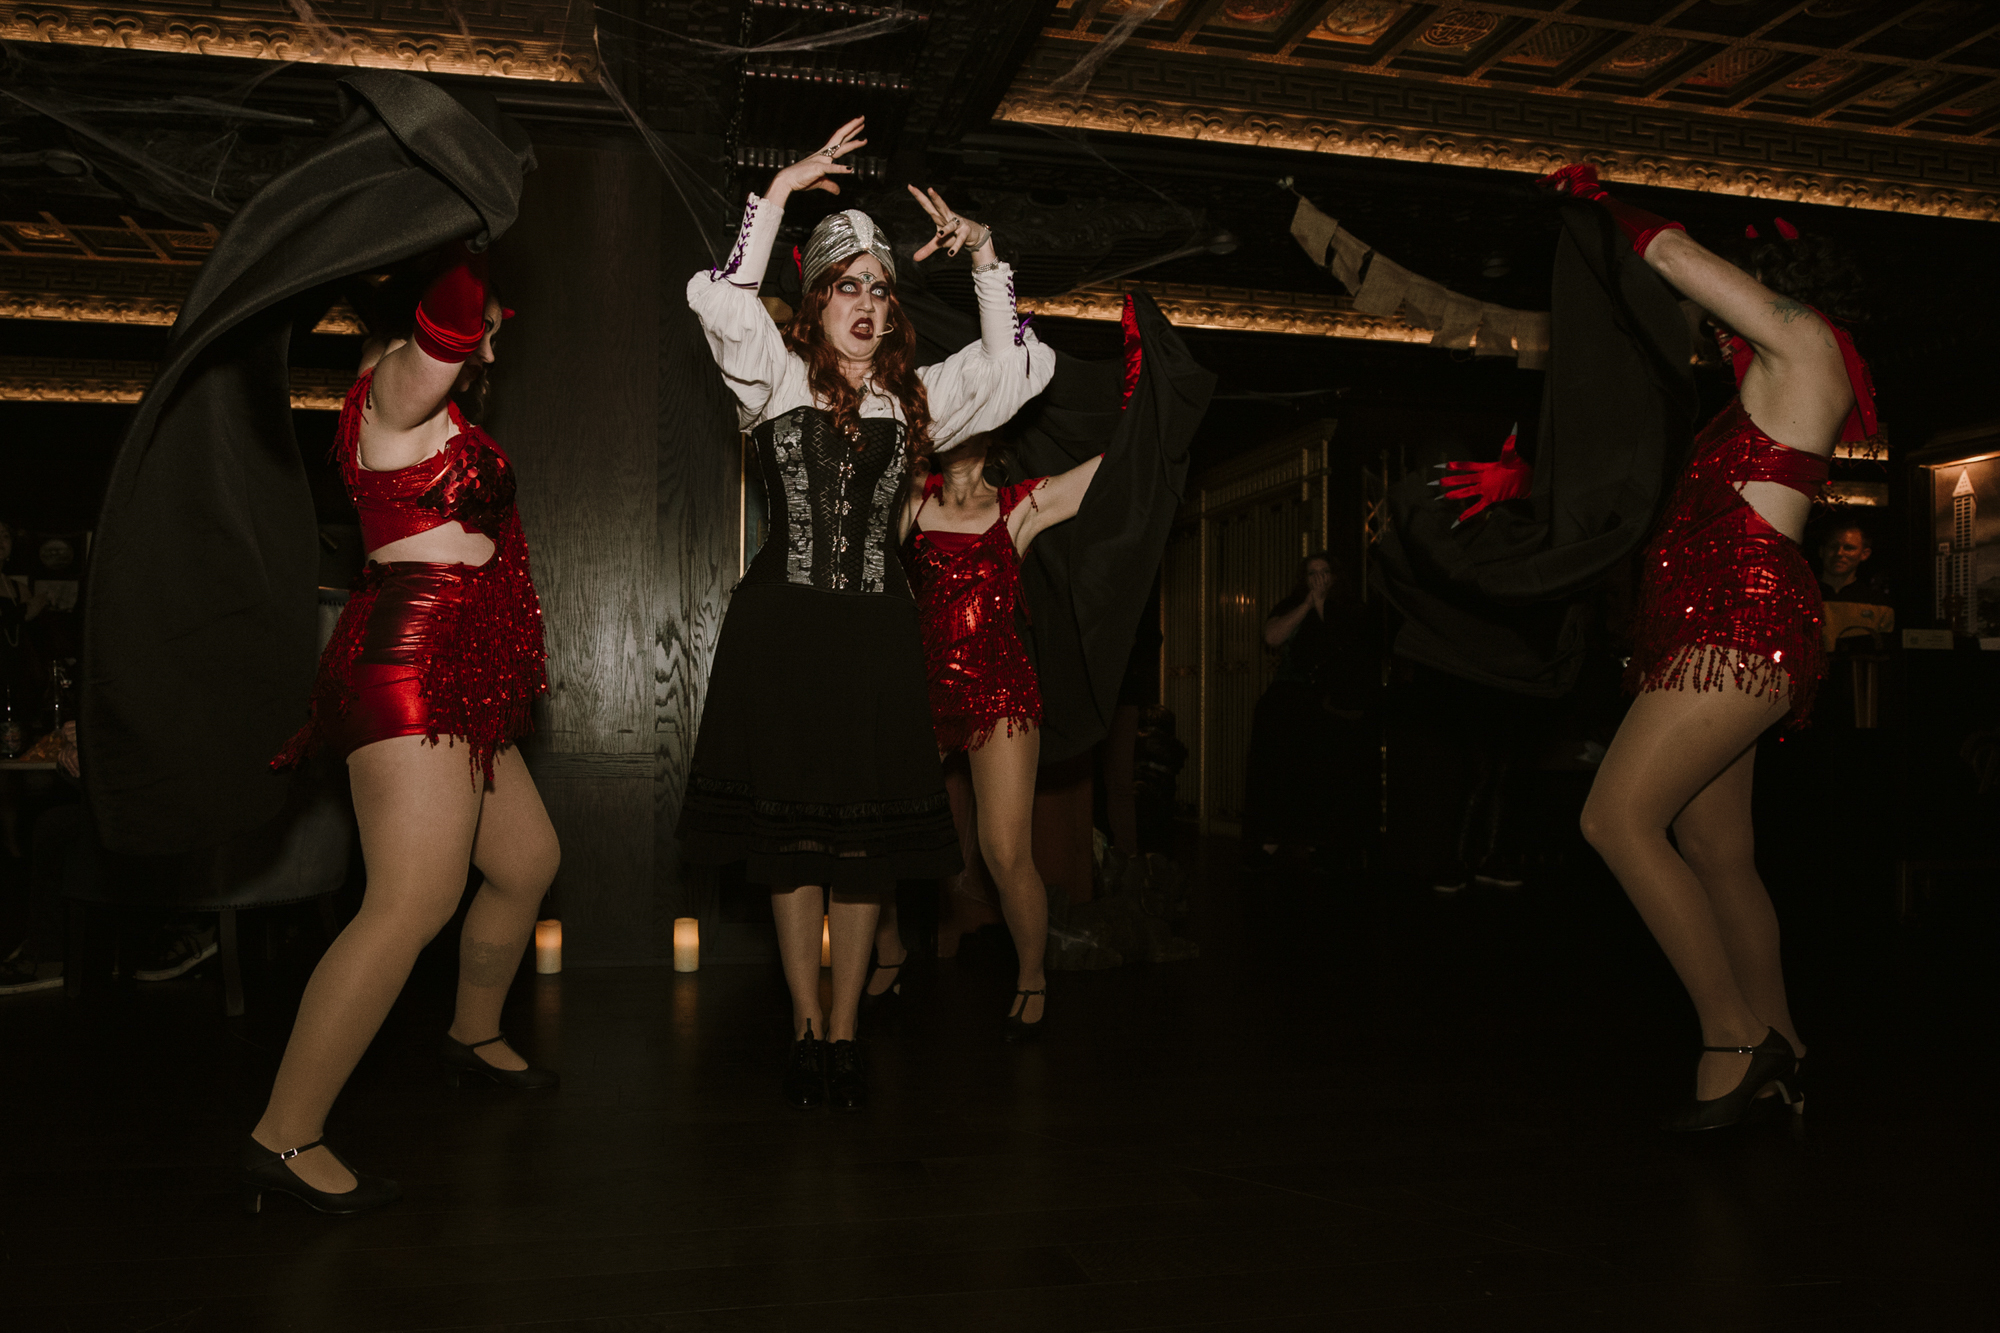 <p>It's the [zom] bees knees! For three nights only, Seattle's iconic Smith Tower transformed into a spooky speakeasy complete with dance parties, zombie flappers,{&nbsp;}séances and scary sangria. More info at visit.smithtower.com! (Image: Sunita Martini / Seattle Refined)</p>